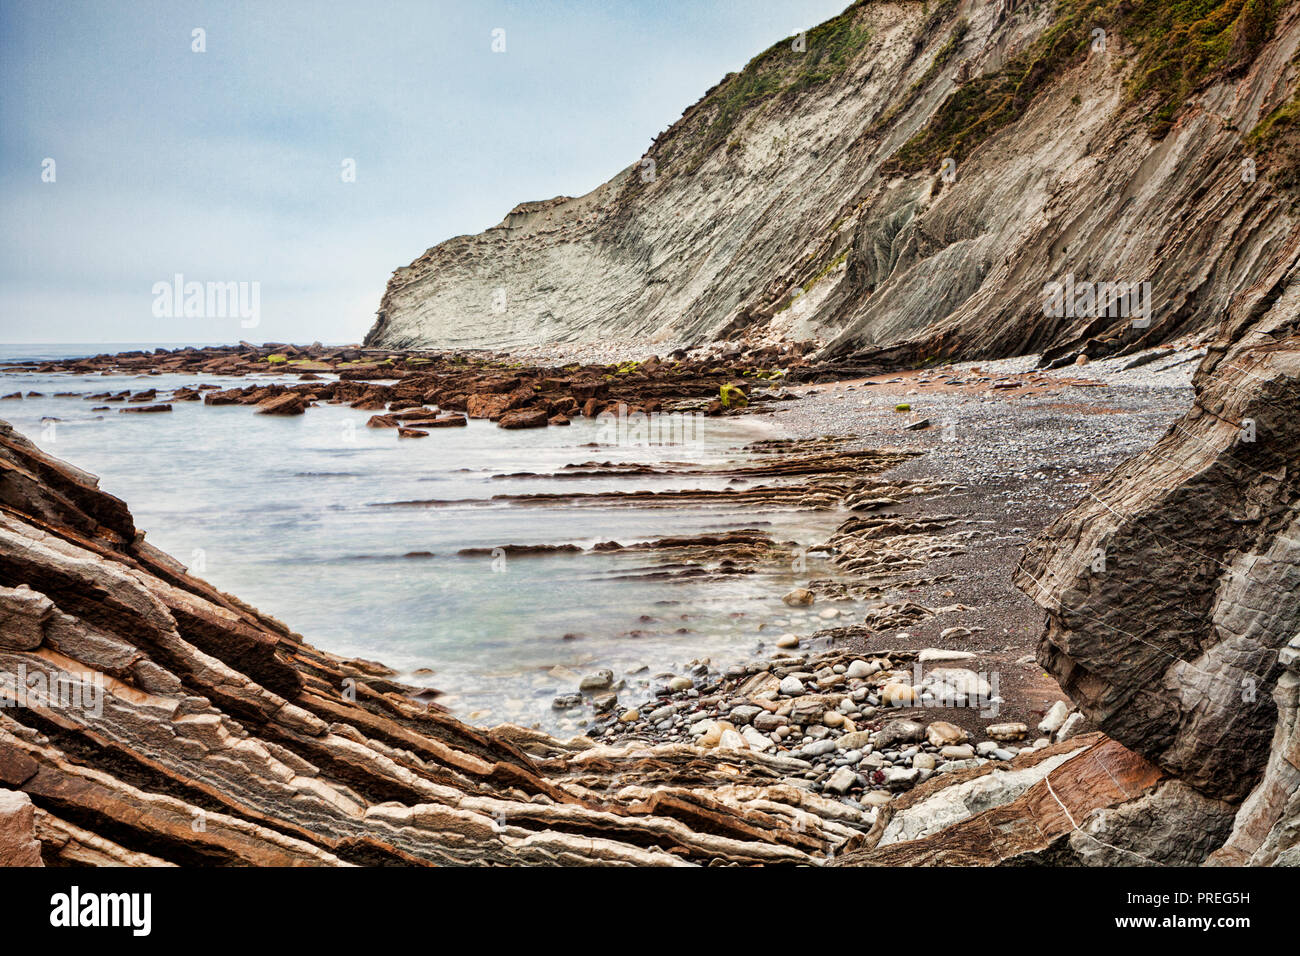 Flysch formations in the geological park at Itzurun Beach, Zumaia, Basque Country, Spain. Stock Photo